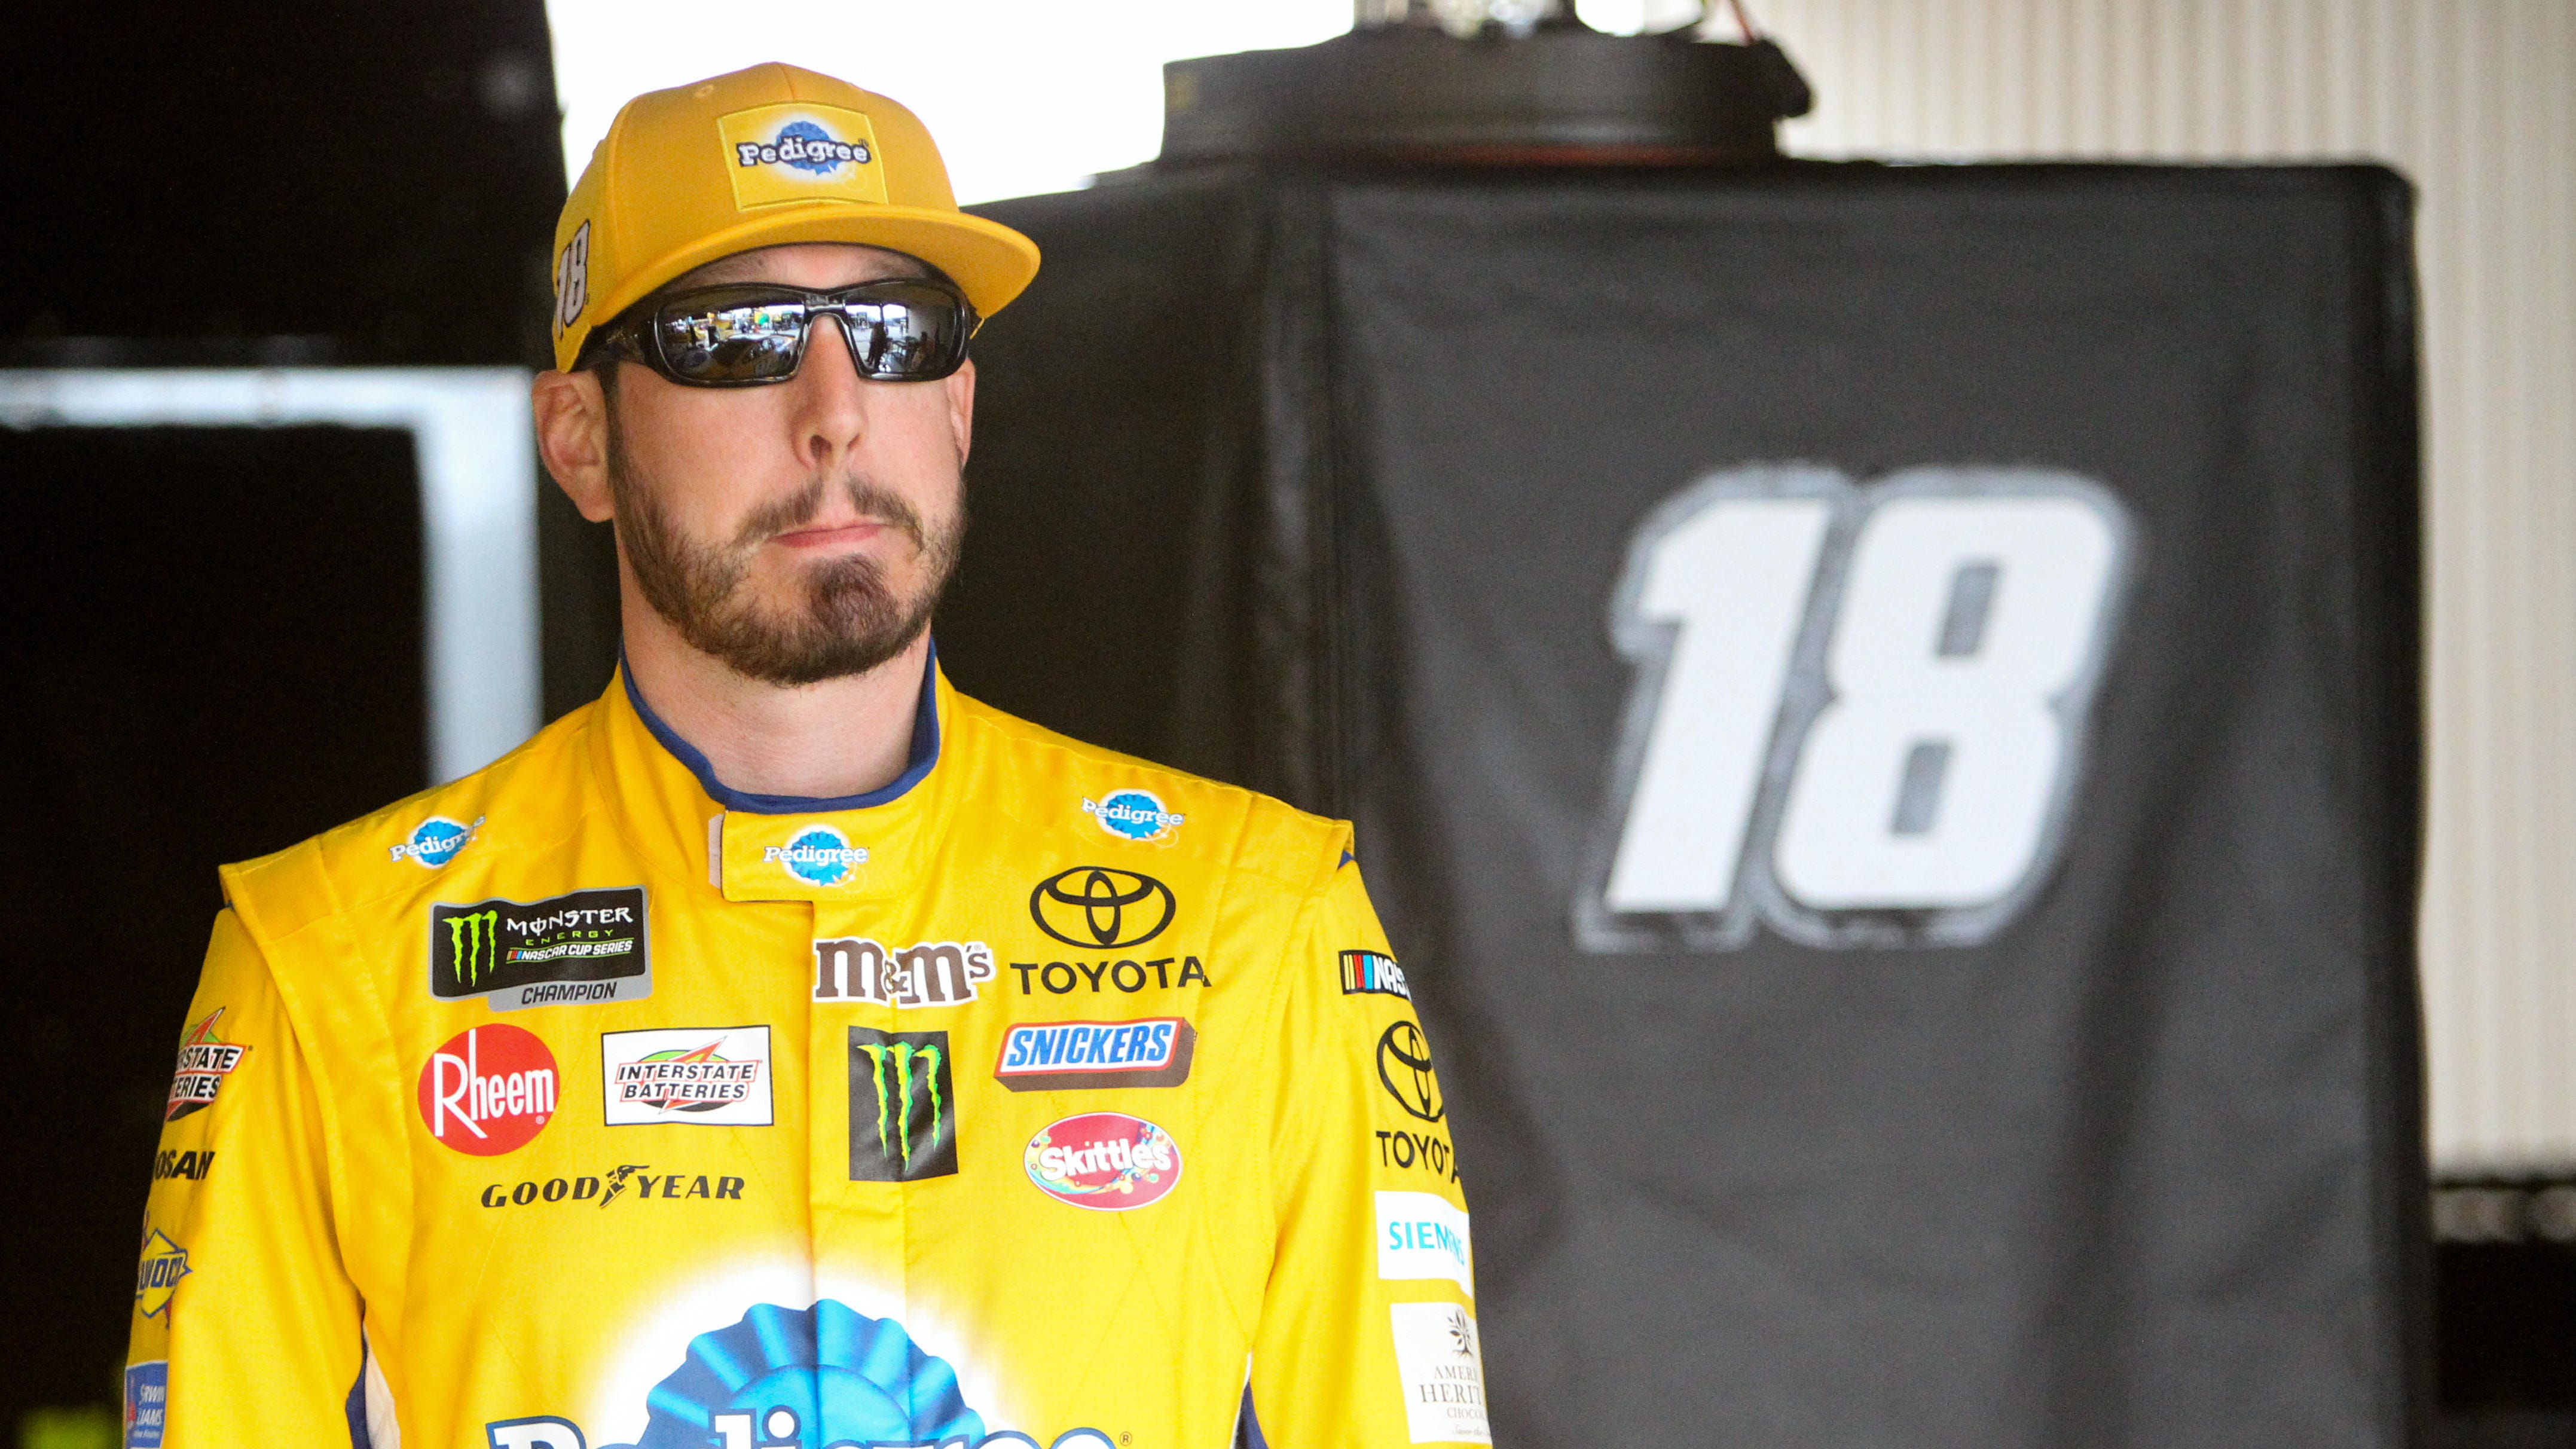 Ed Carpenter interested in having Kyle Busch race Indianapolis 500 for his team – USA TODAY